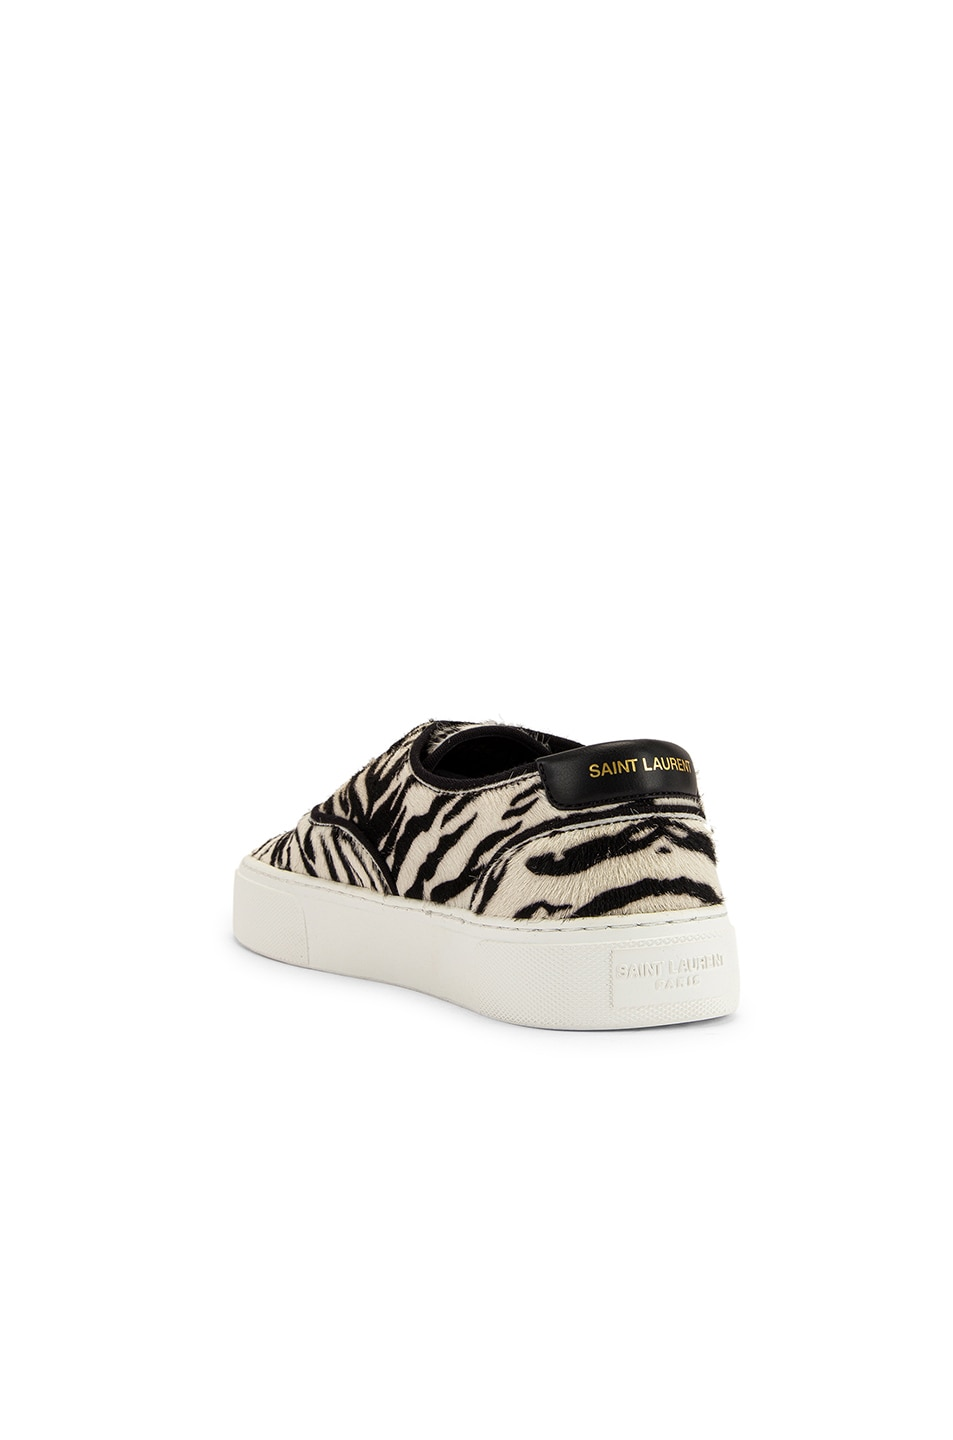 Image 3 of Saint Laurent Zebra Low Top Sneakers in Black & White